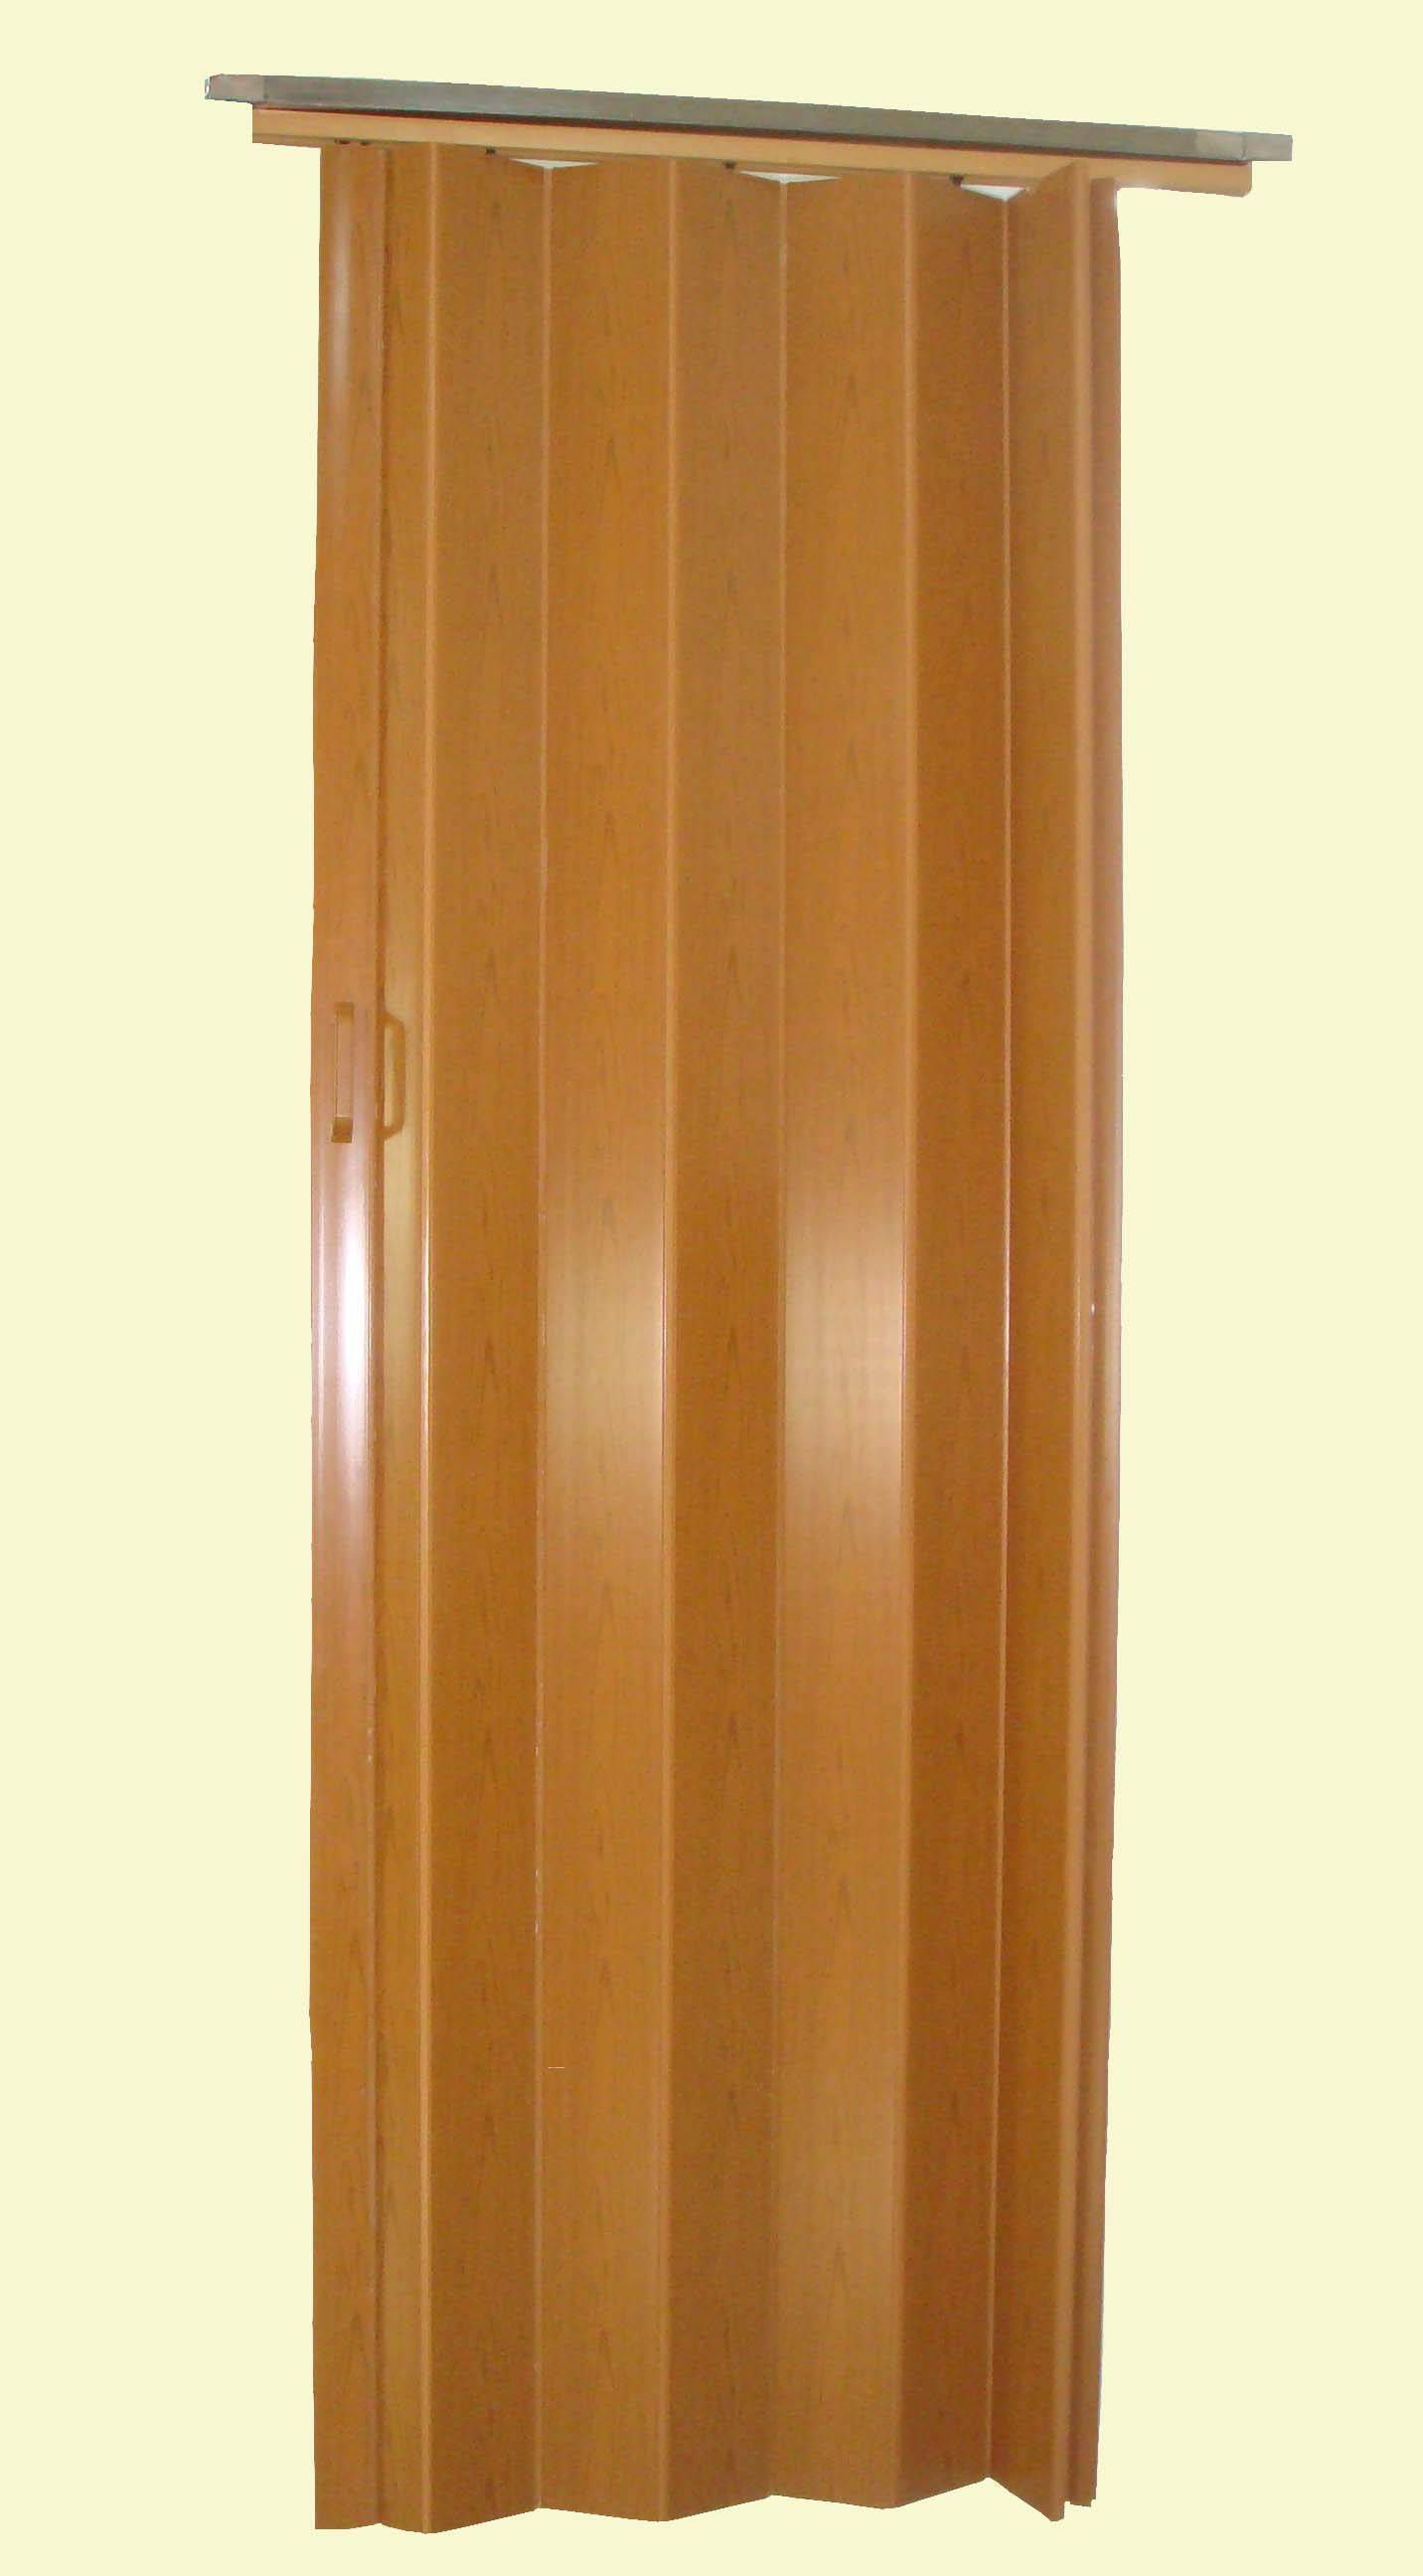 Plastic folding door Woodfold